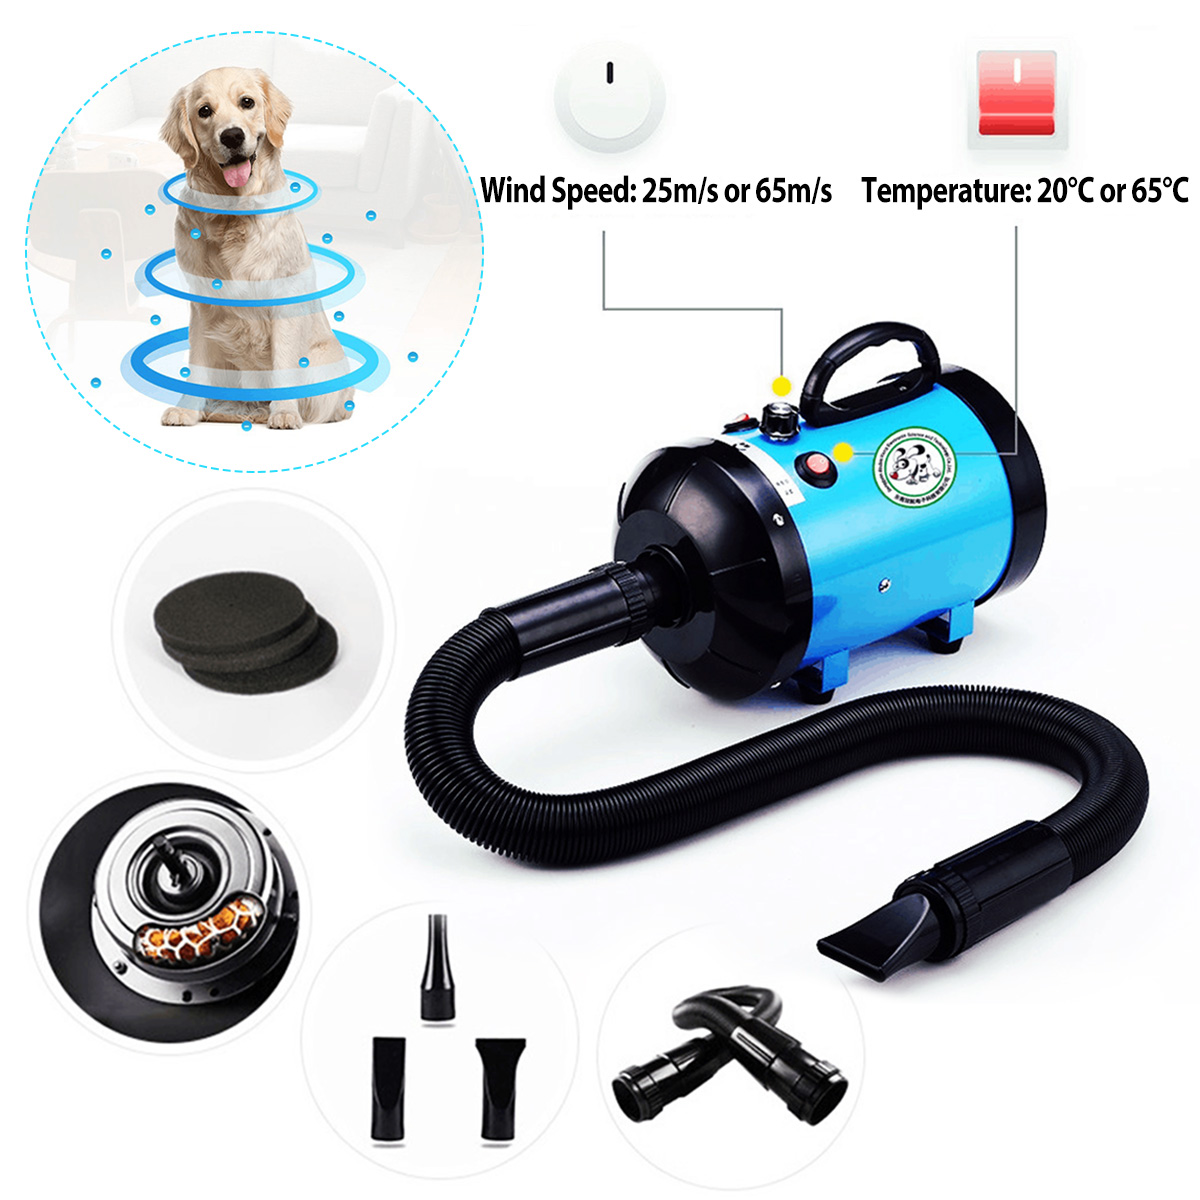 Adjustable Dog Grooming Dryer Pet Hair Dryer Strong Power Low Noice Blower 220v 2800W Eu Plug Pink Black Blue Color